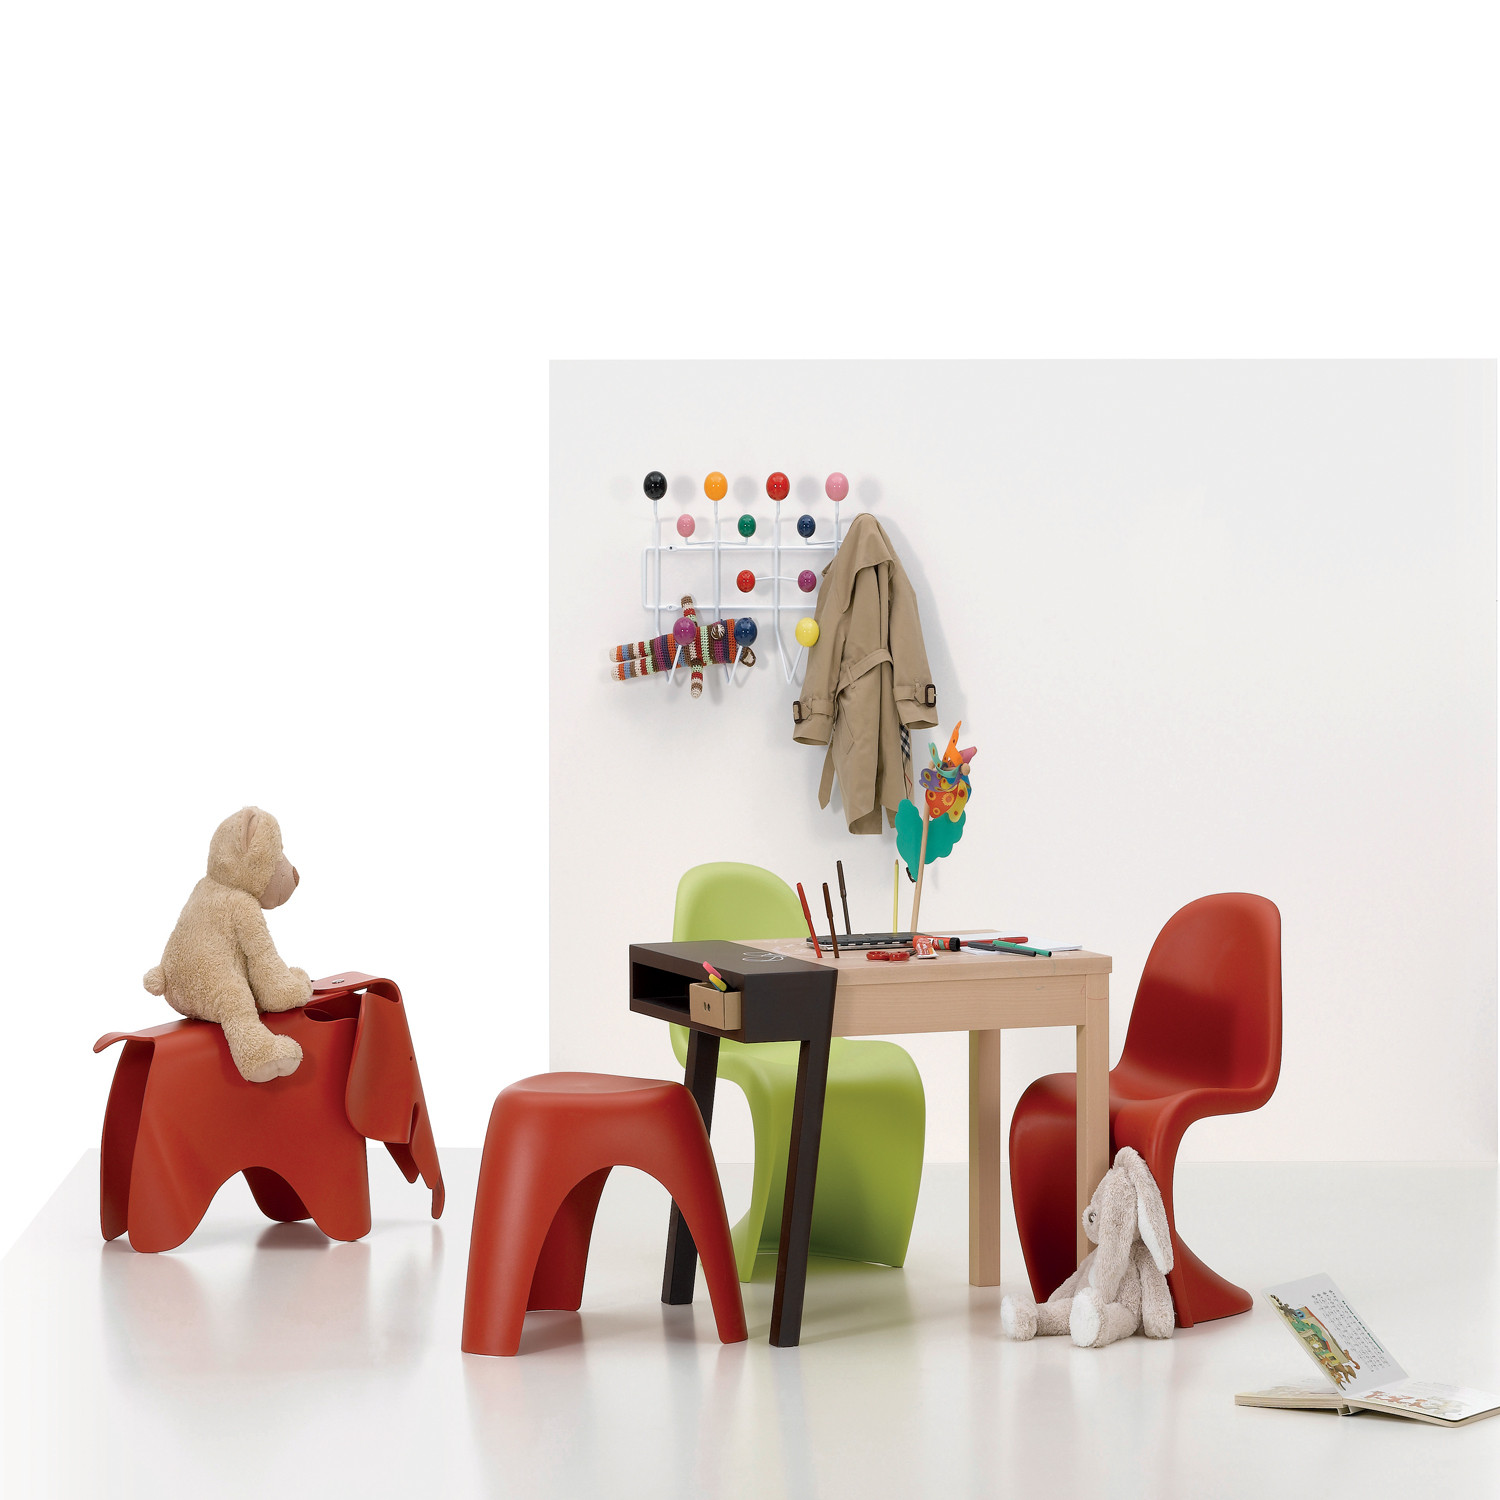 vitra panton chair awesome panton stuhl vitra full size of panton chair junior kinderstoel. Black Bedroom Furniture Sets. Home Design Ideas